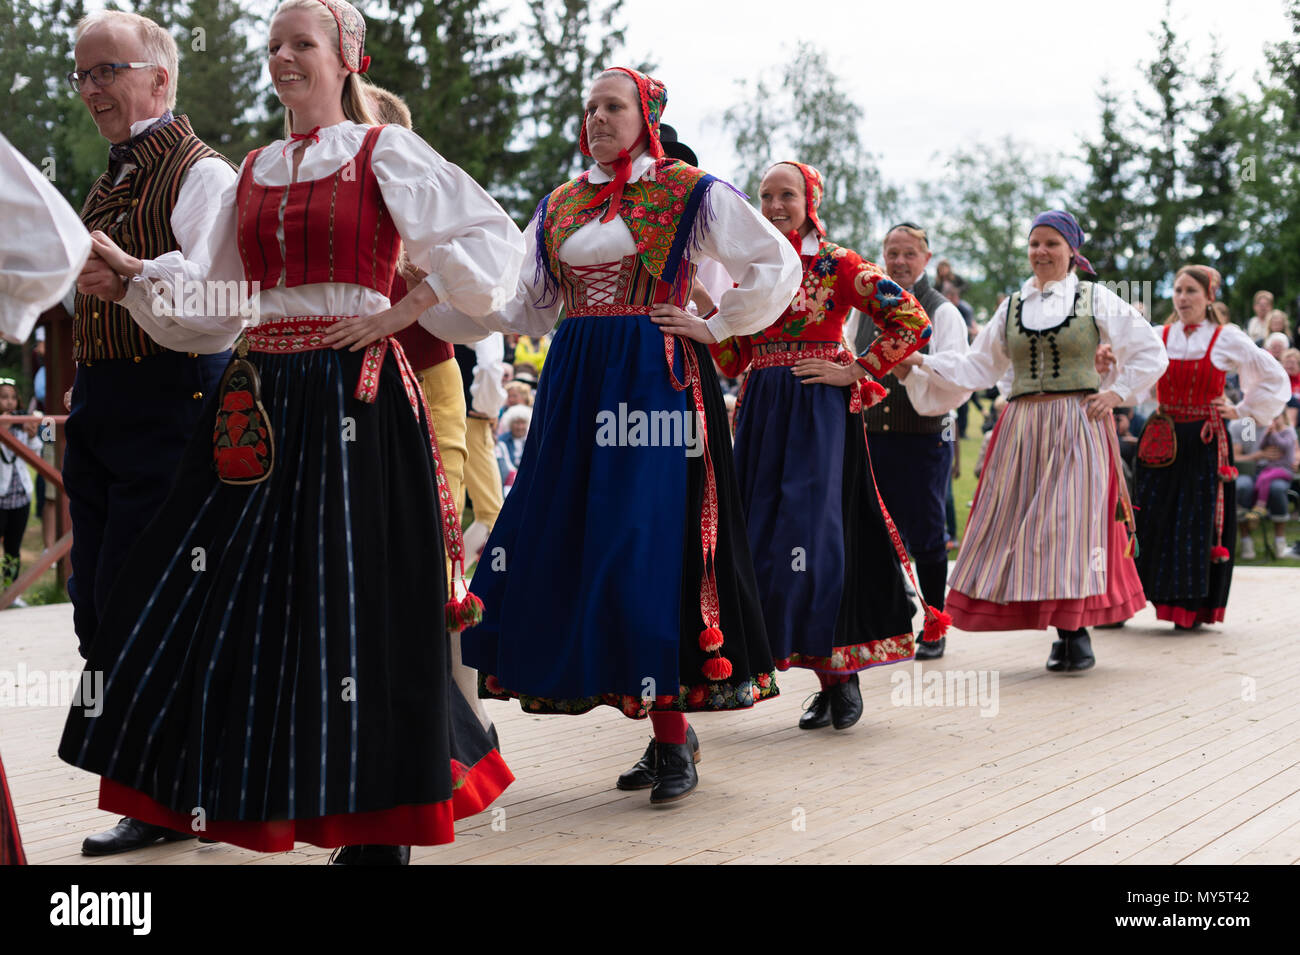 Stockholm, Sweden, June 6, 2018. Sweden's National Day celebration at Skansen, Stockholm. Public holiday in Sweden and traditional Swedish National Day June 6 celebration at the world´s oldest  open-air museum - Skansen. Credit: Barbro Bergfeldt/Alamy Live News - Stock Image